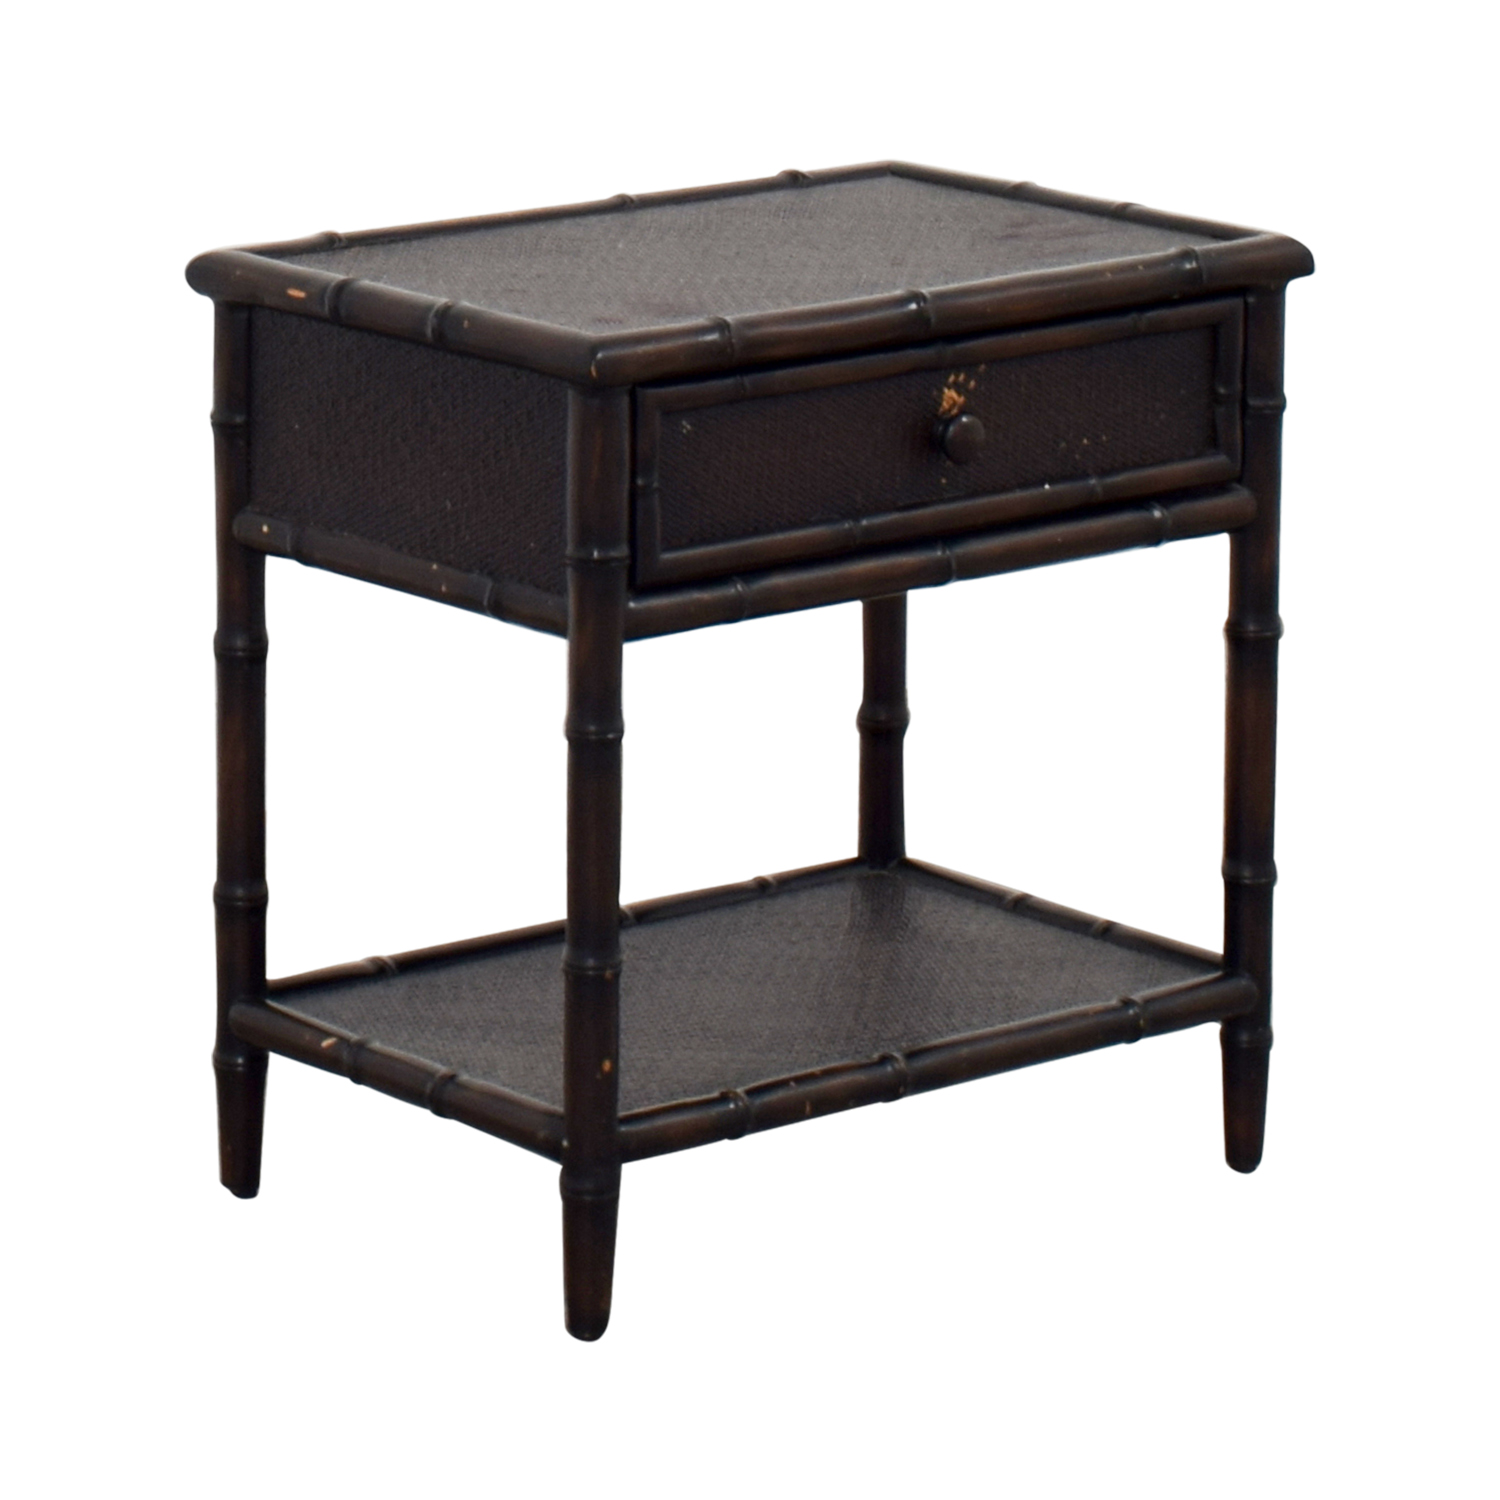 Solid Wood Coffee And End Tables For Sale: Crate & Barrel Crate & Barrel Queen Solid Wood